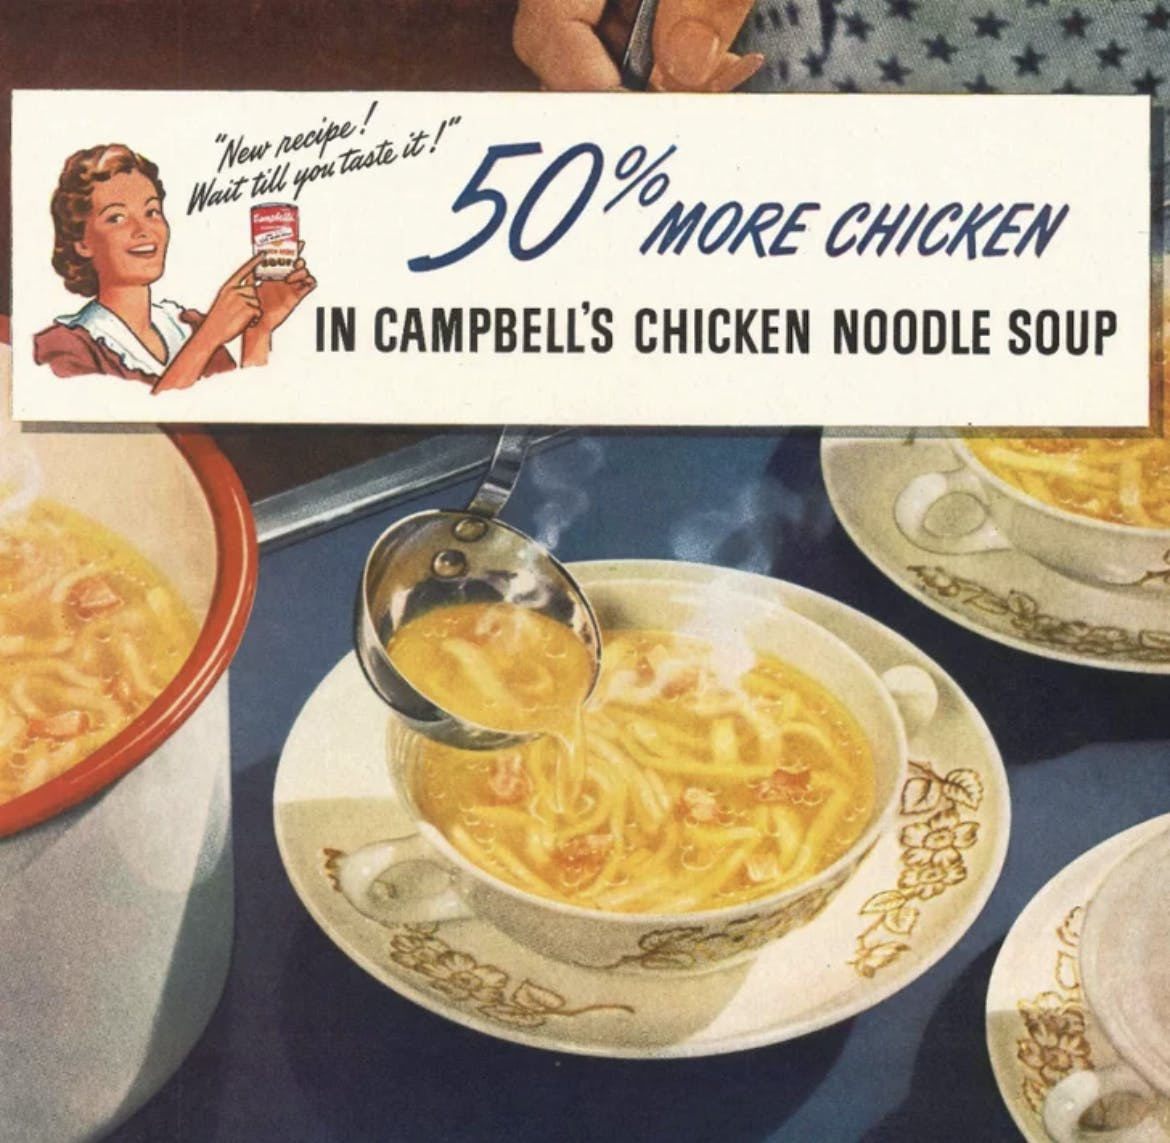 campbells more chicken soup ad